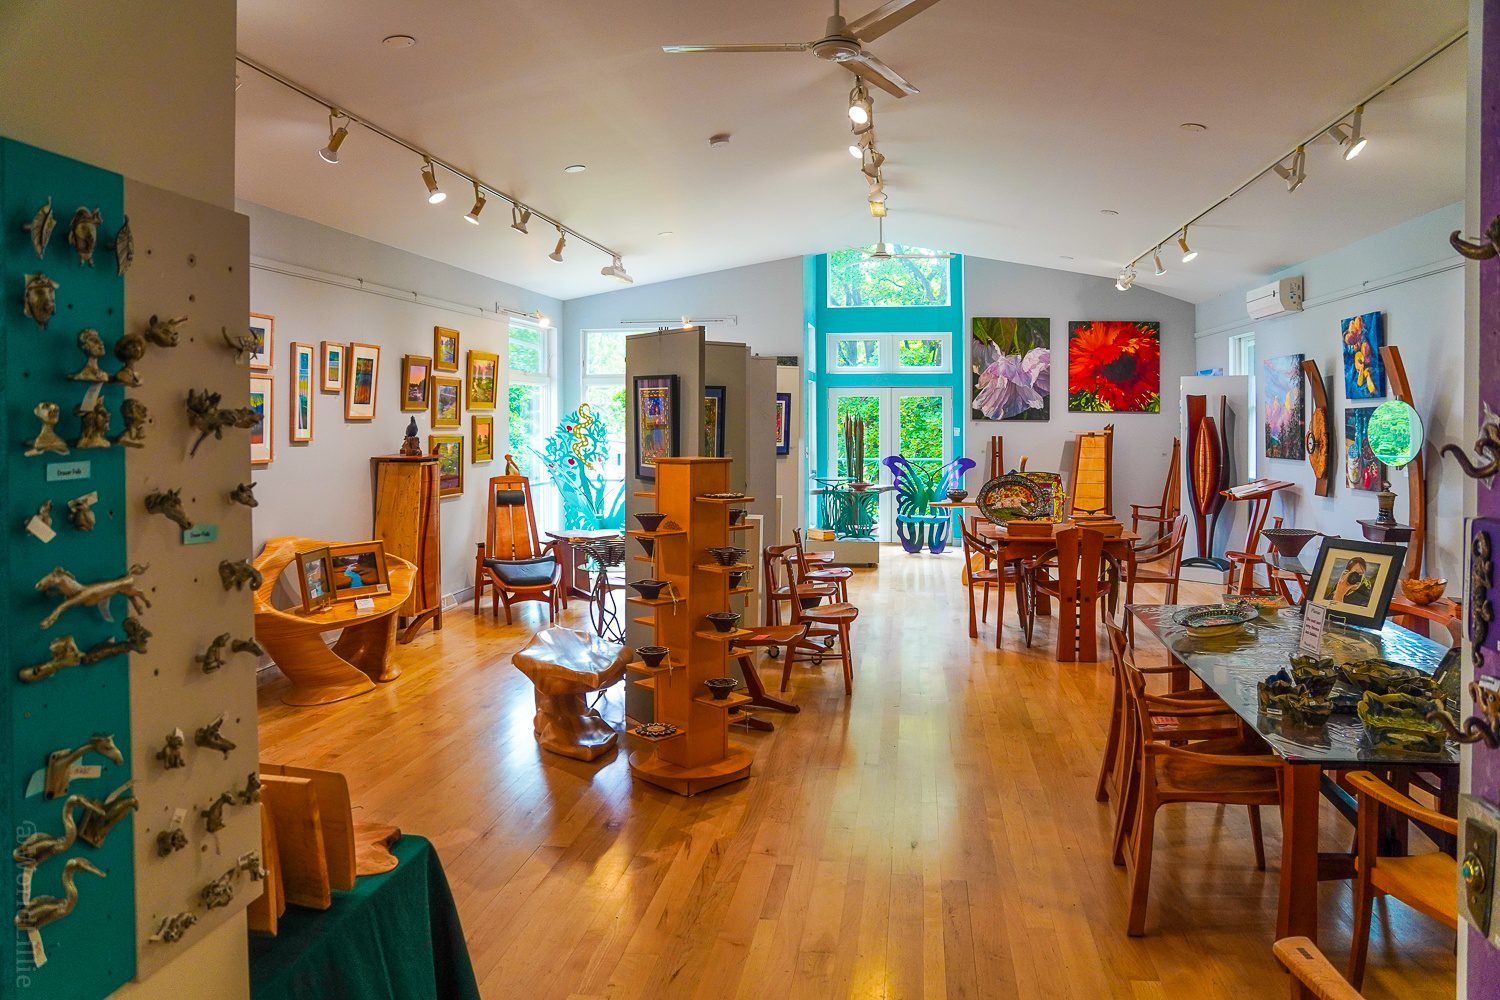 What an awesome art gallery.